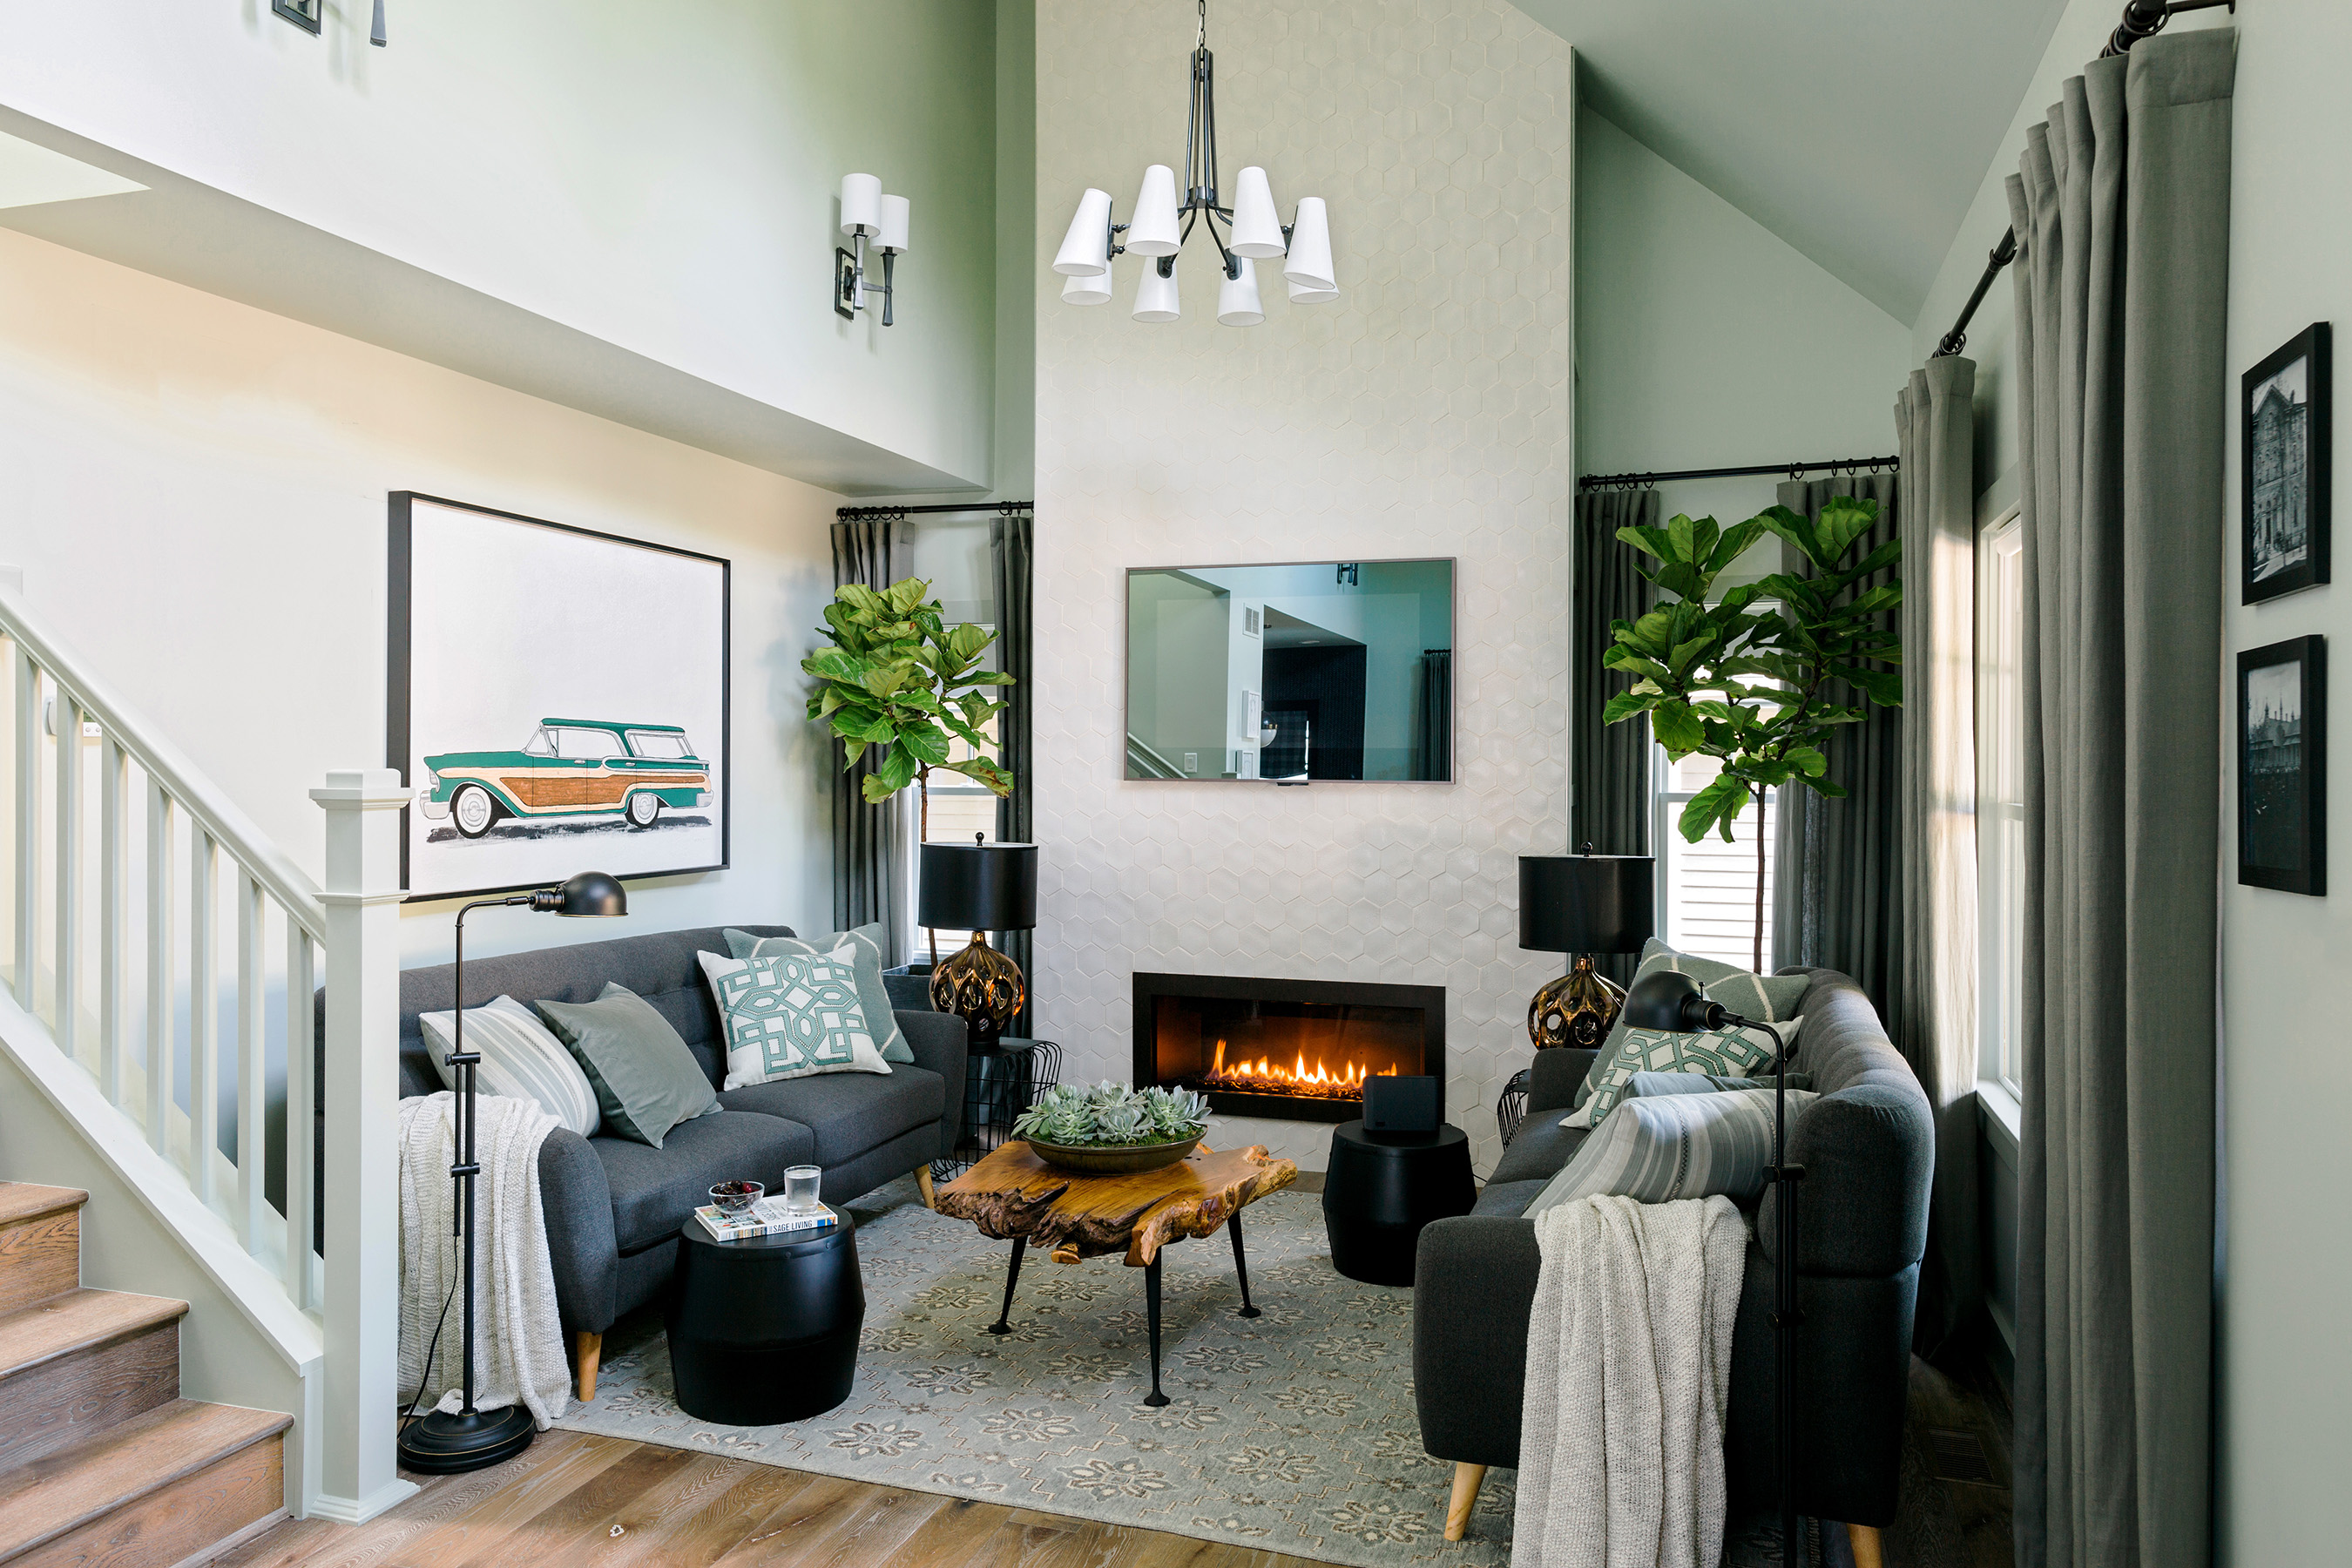 In the living room of the HGTV Urban Oasis 2016, the dramatic vaulted ceiling is highlighted by floor-to-ceiling tile, a pair of matching sofas offer plenty of seating and art of a vintage station wagon is a nod to nearby Motor City.